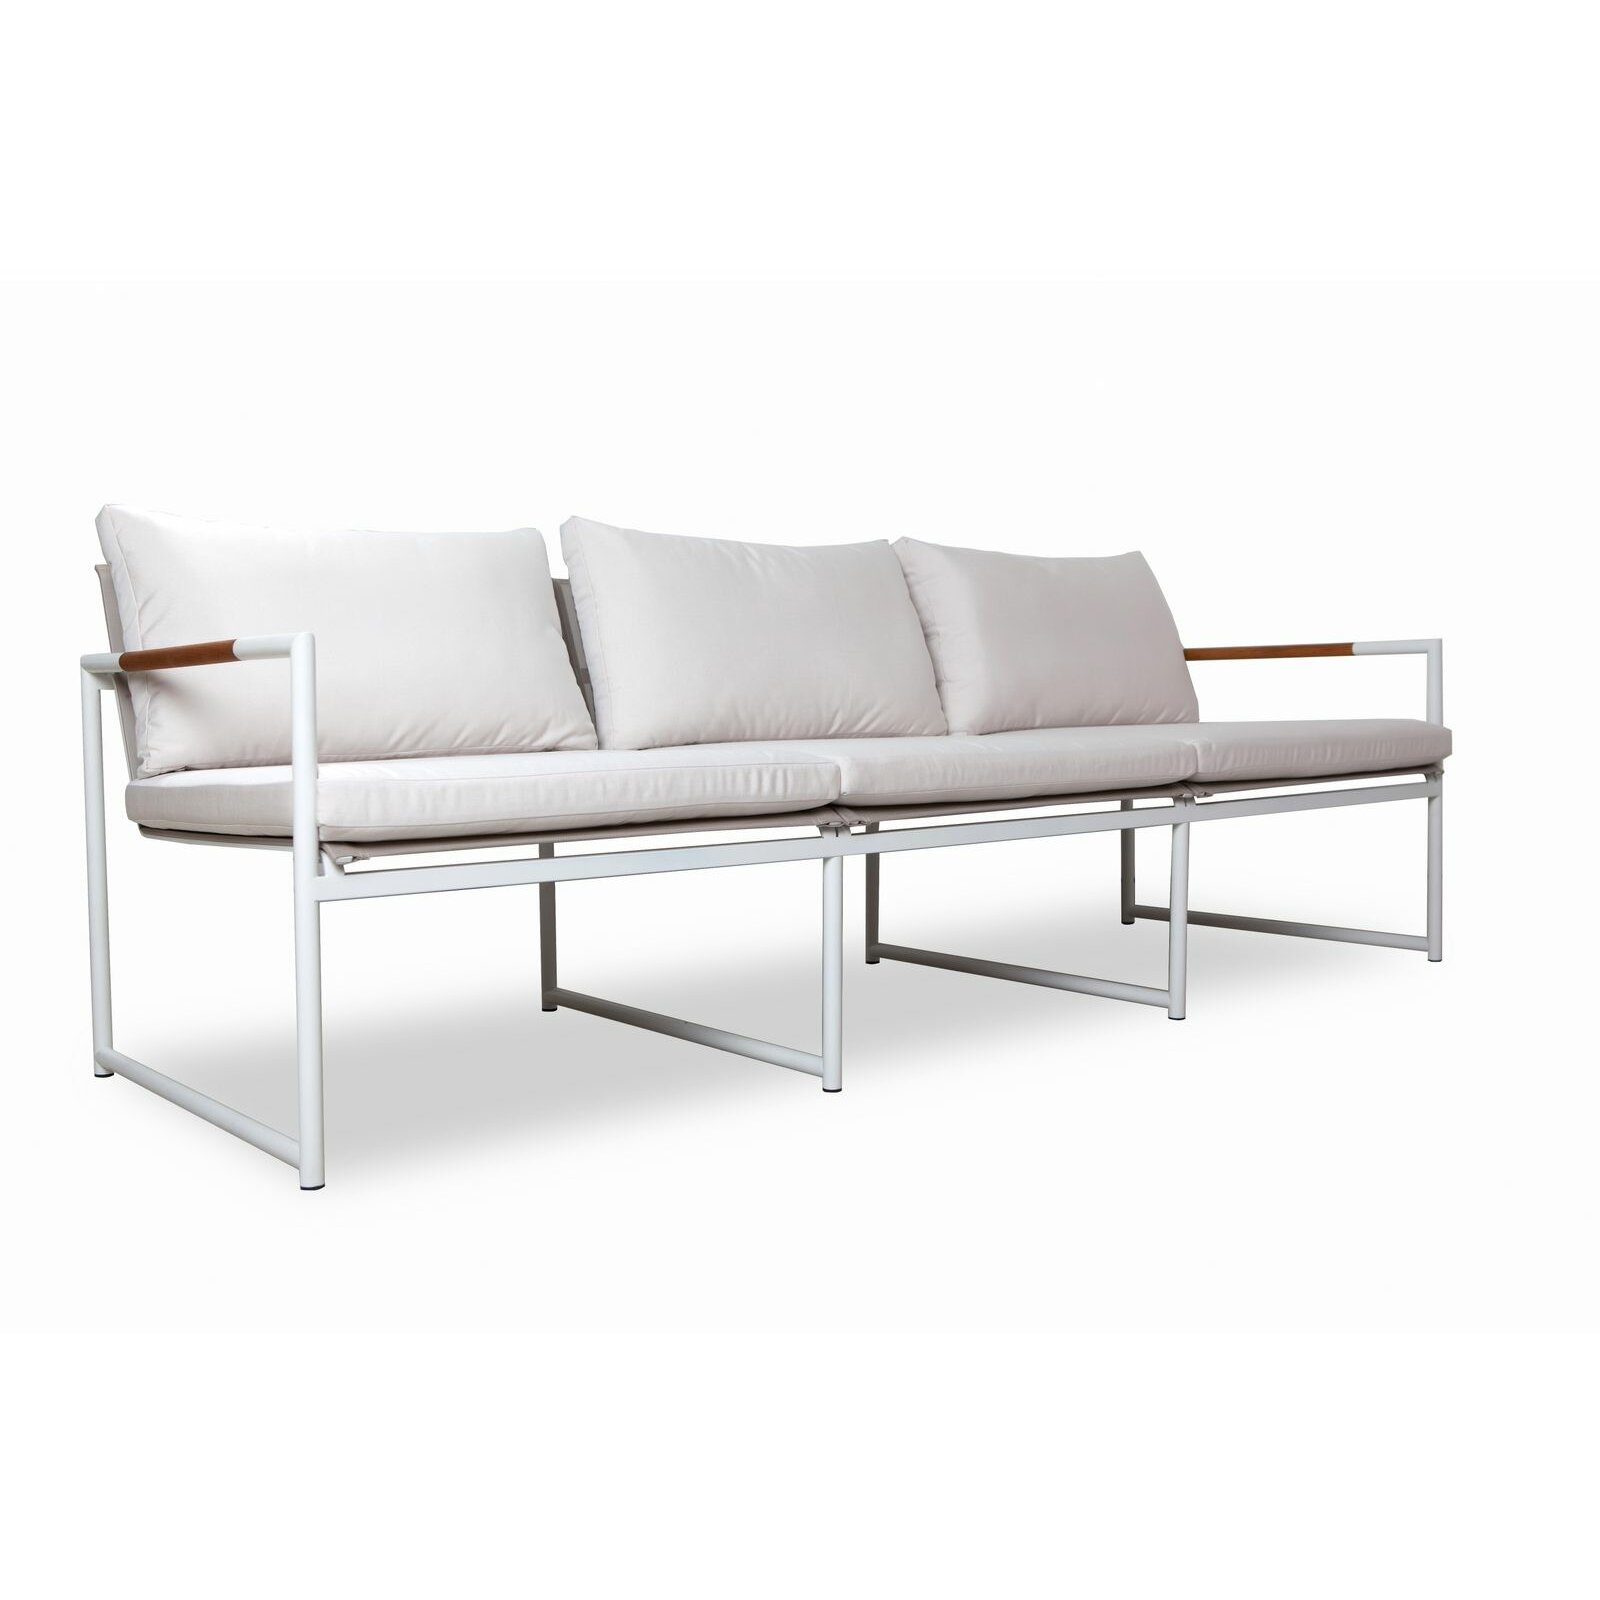 Harbour Outdoor Breeze Sofa With Cushions Allmodern